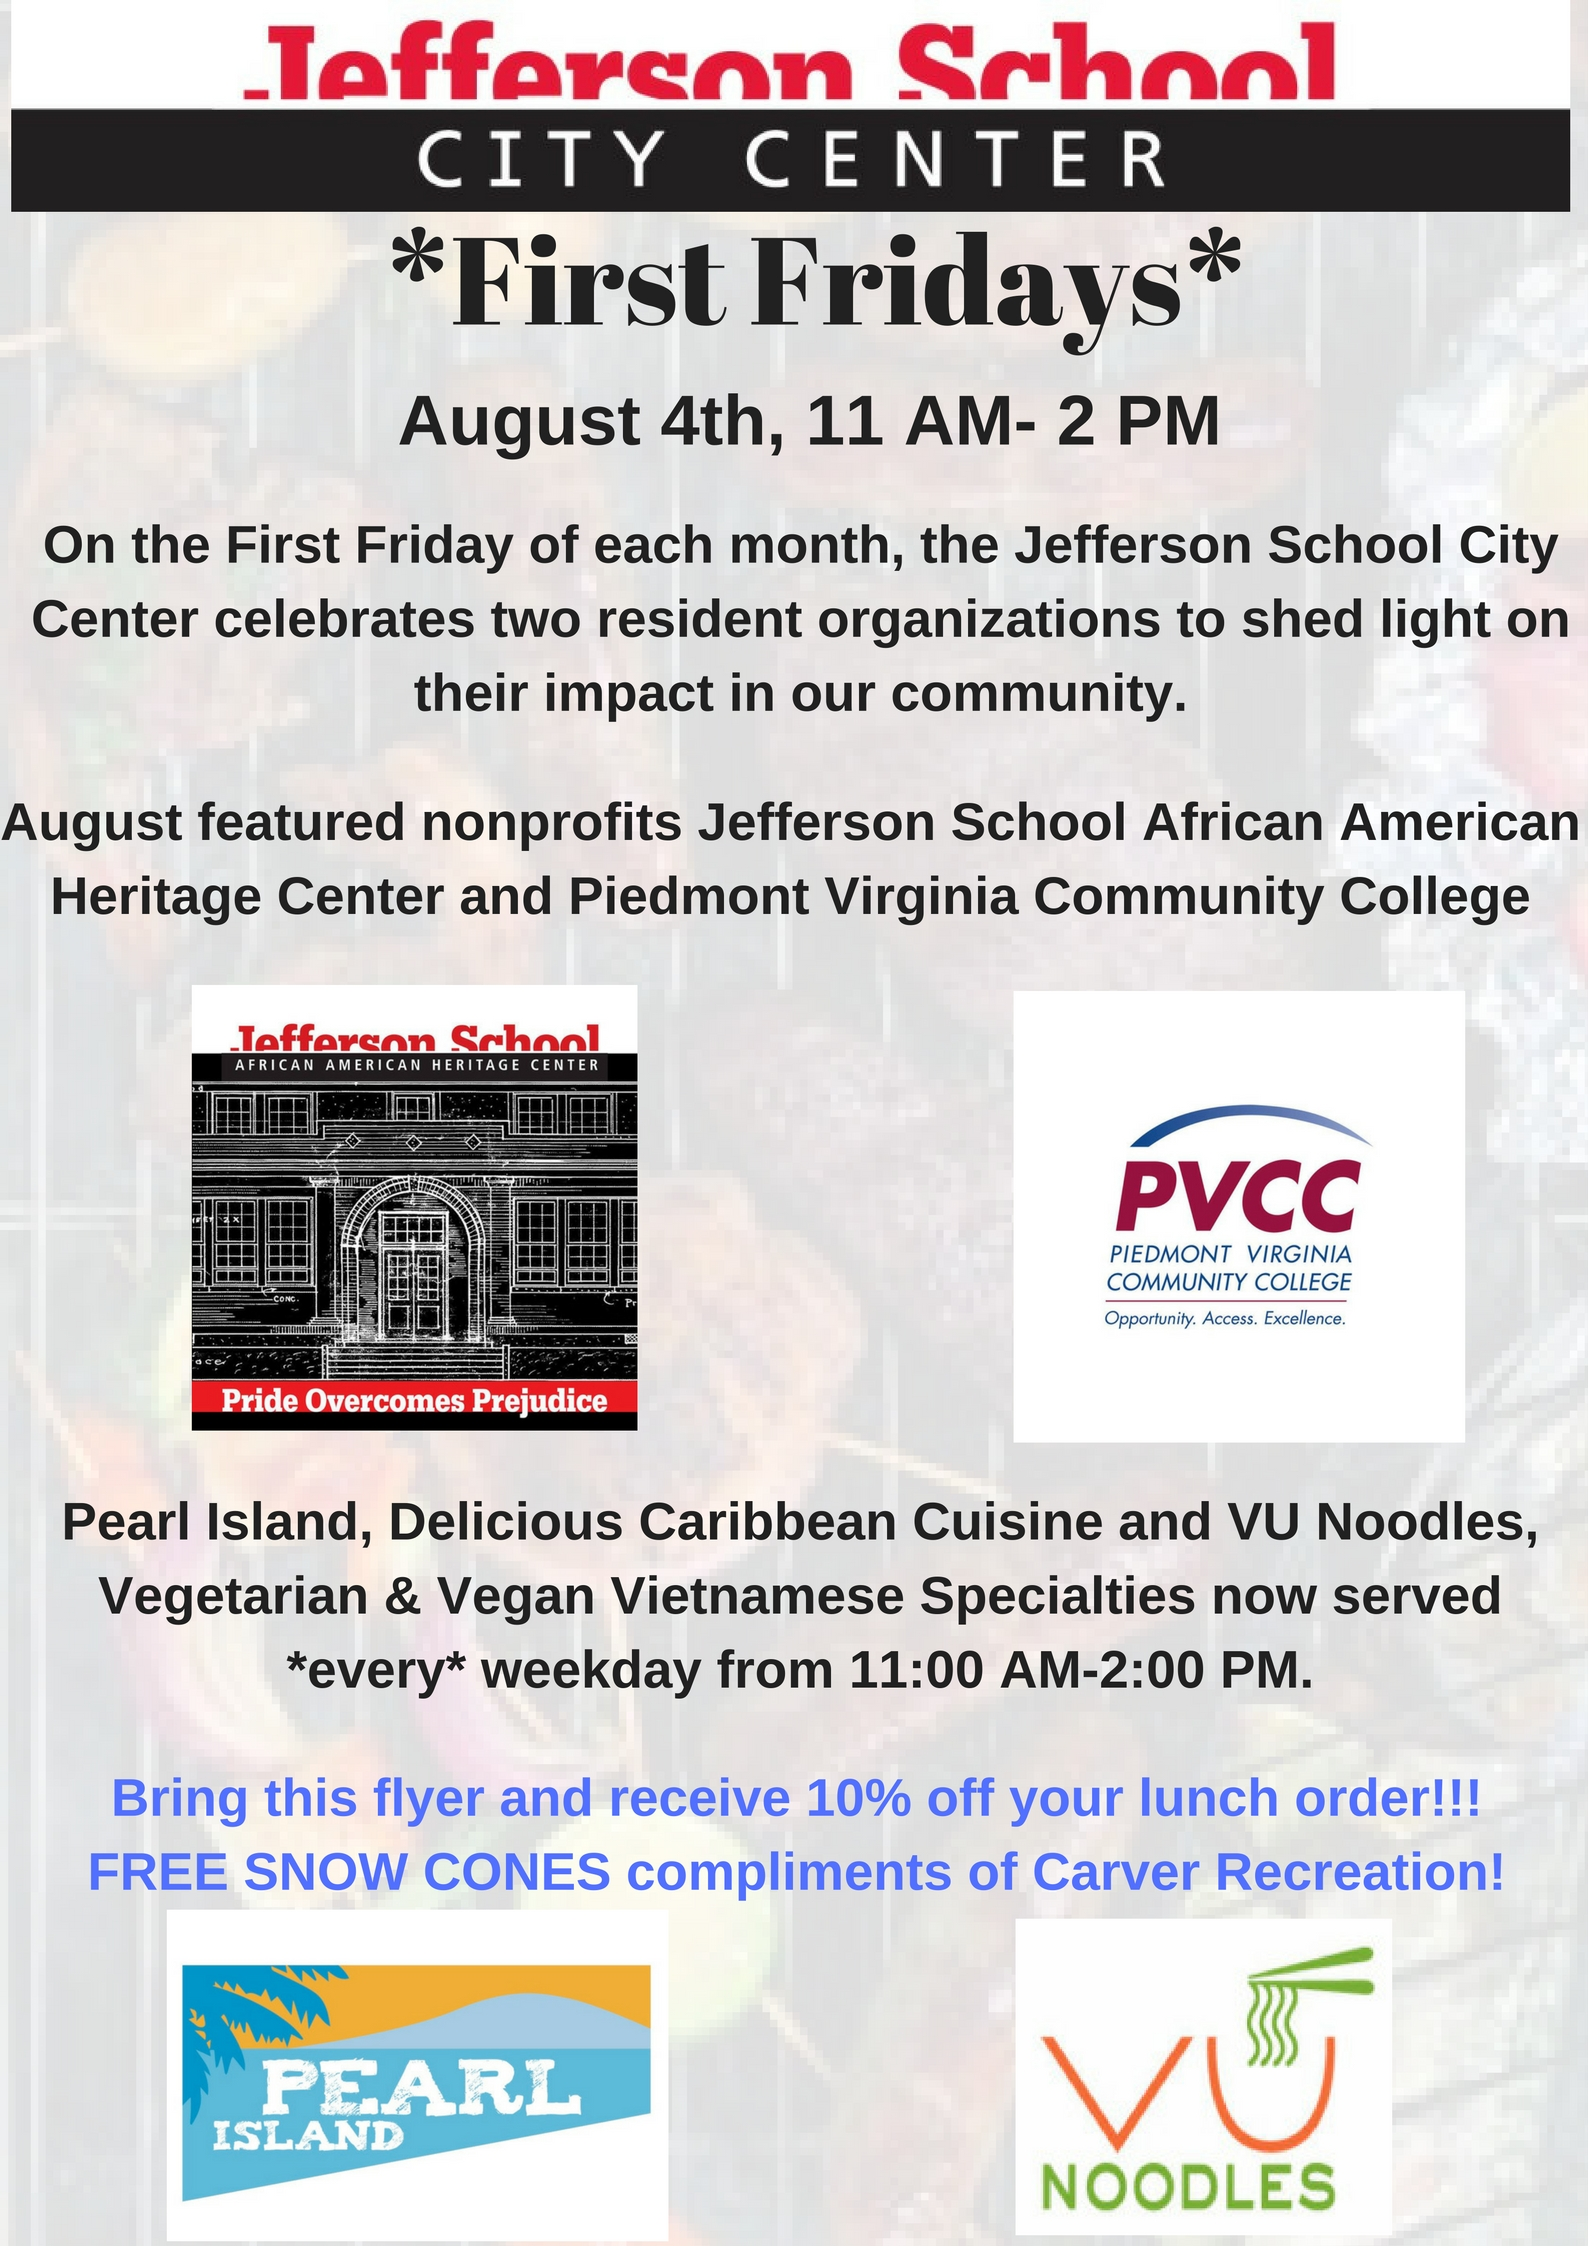 Friday August 1st Free Community >> Pvcc To Be Featured At Jscc First Fridays August 4 News Piedmont